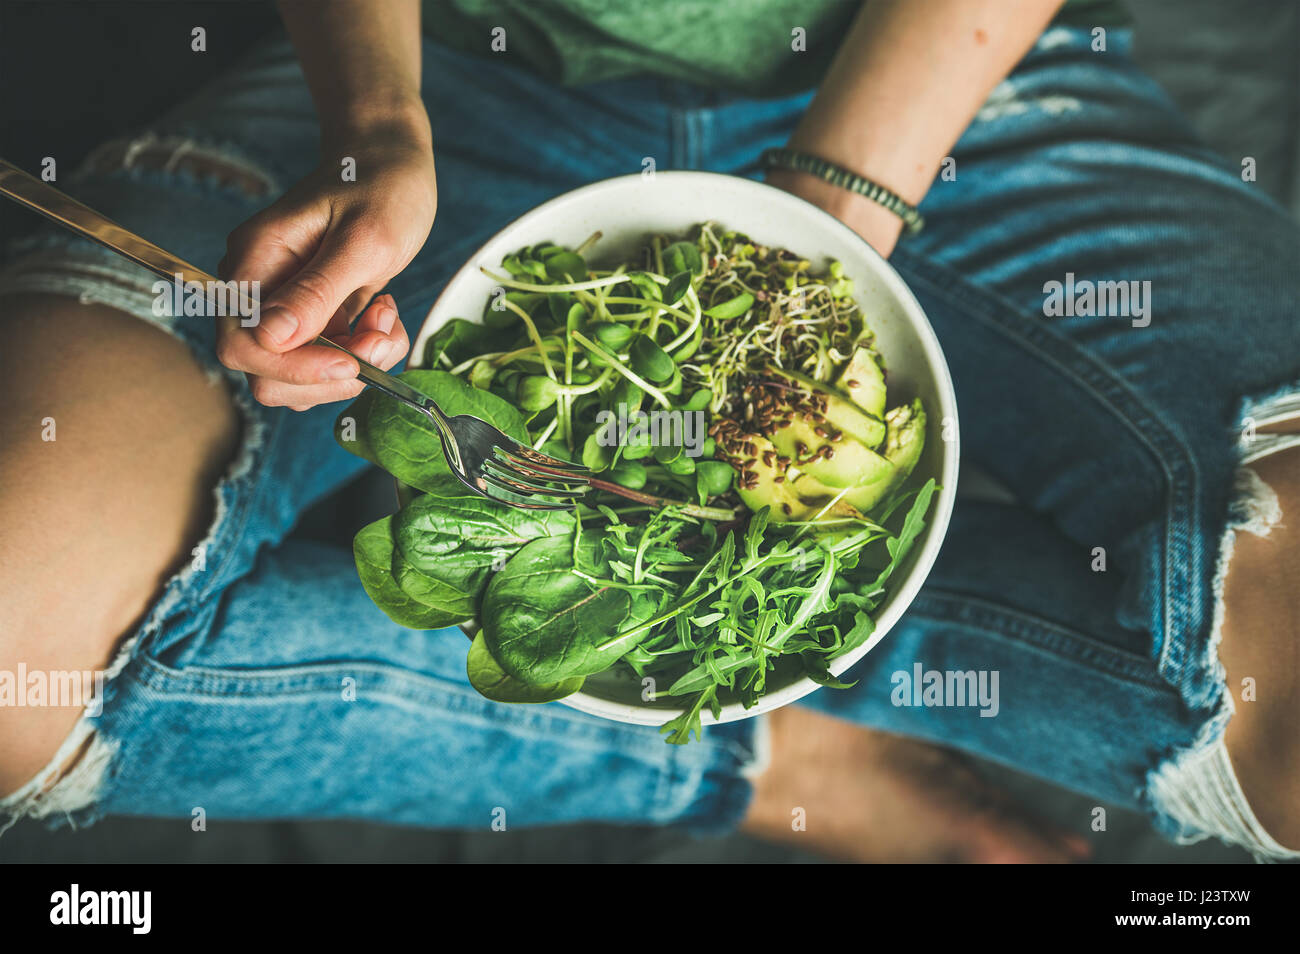 Vegetarian breakfast with spinach, arugula, avocado, seeds and sprouts - Stock Image